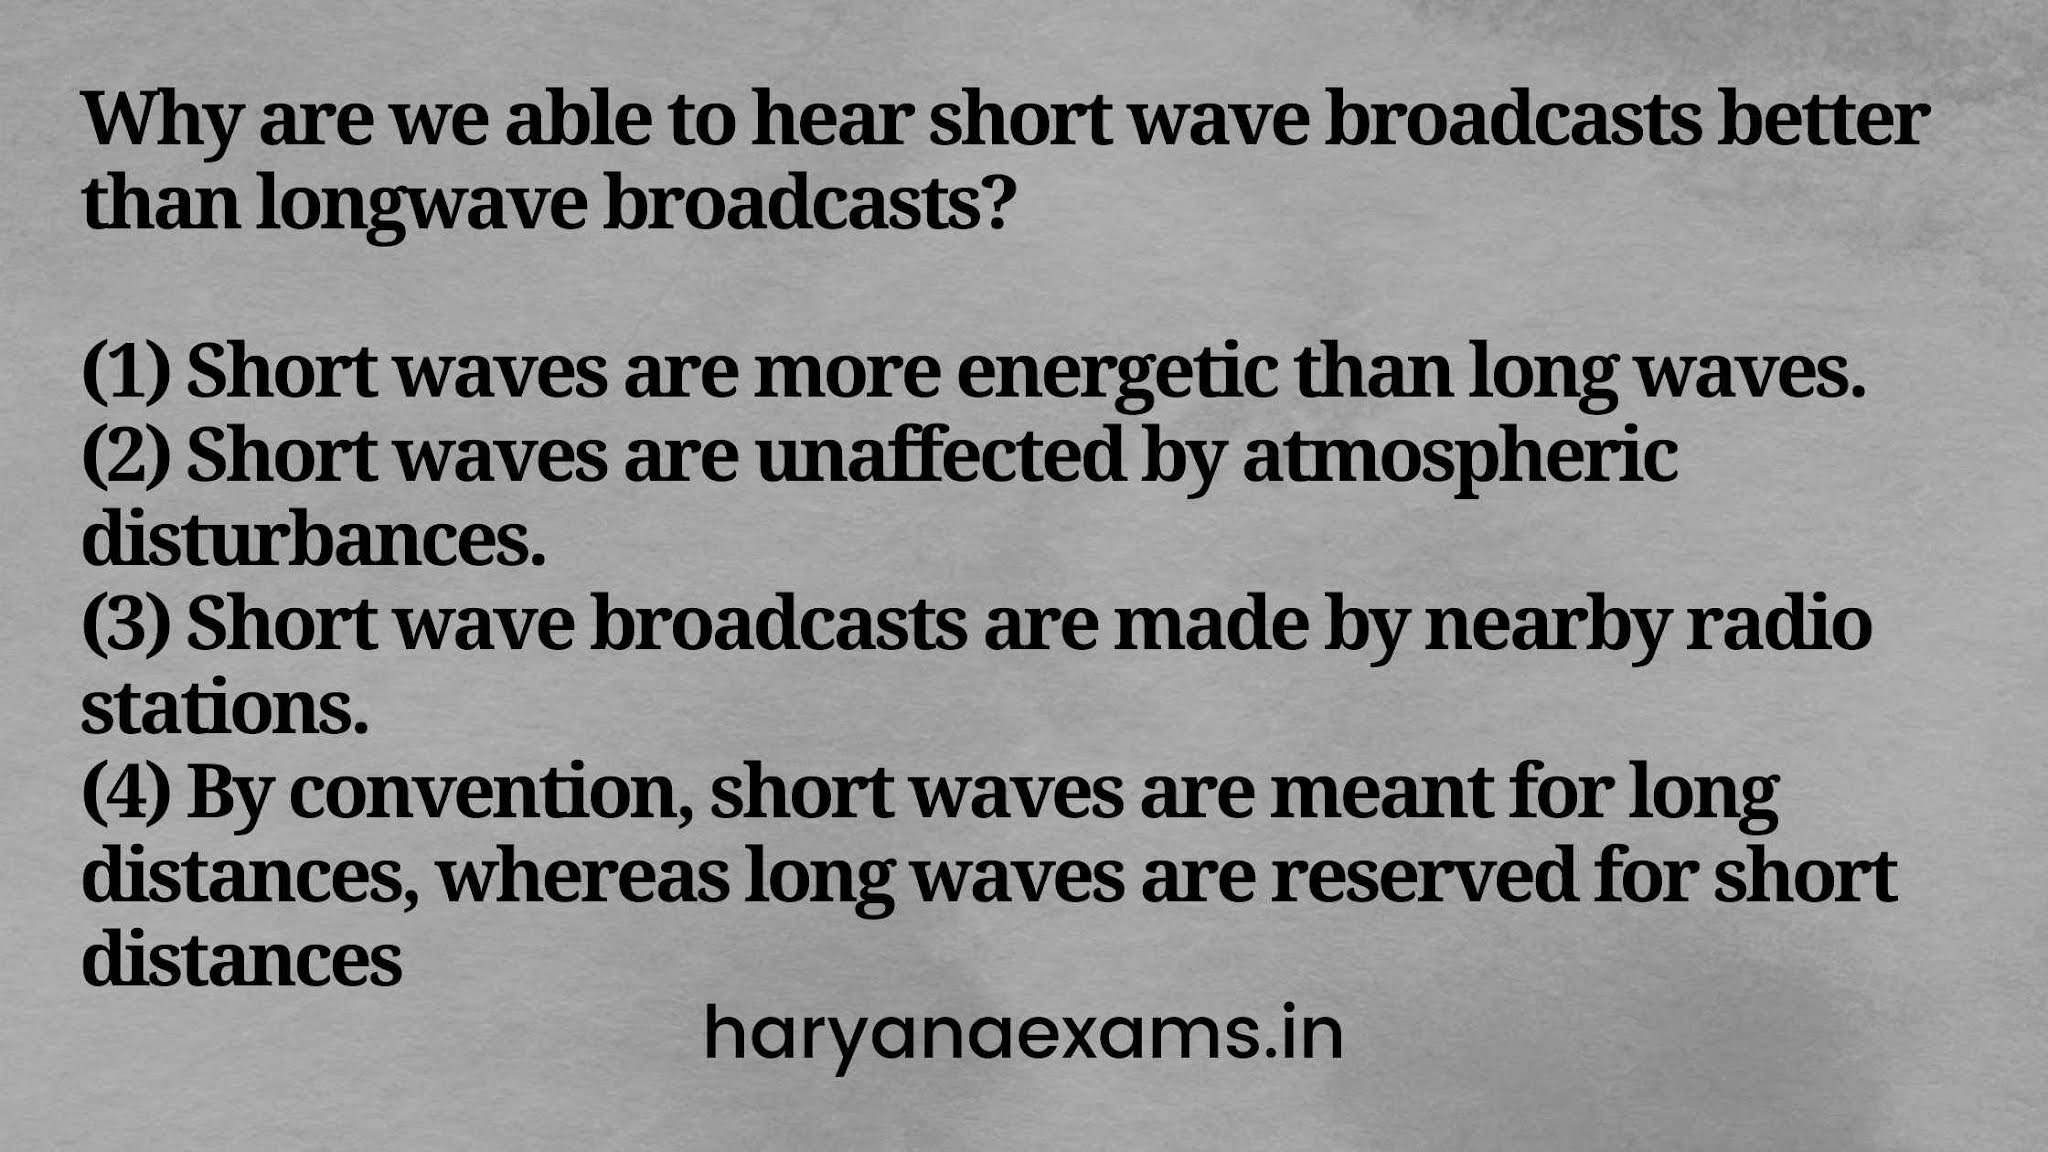 Why are we able to hear short wave broadcasts better than longwave broadcasts?   (1) Short waves are more energetic than long waves.   (2) Short waves are unaffected by atmospheric disturbances.   (3) Short wave broadcasts are made by nearby radio stations.   (4) By convention, short waves are meant for long distances, whereas long waves are reserved for short distances.